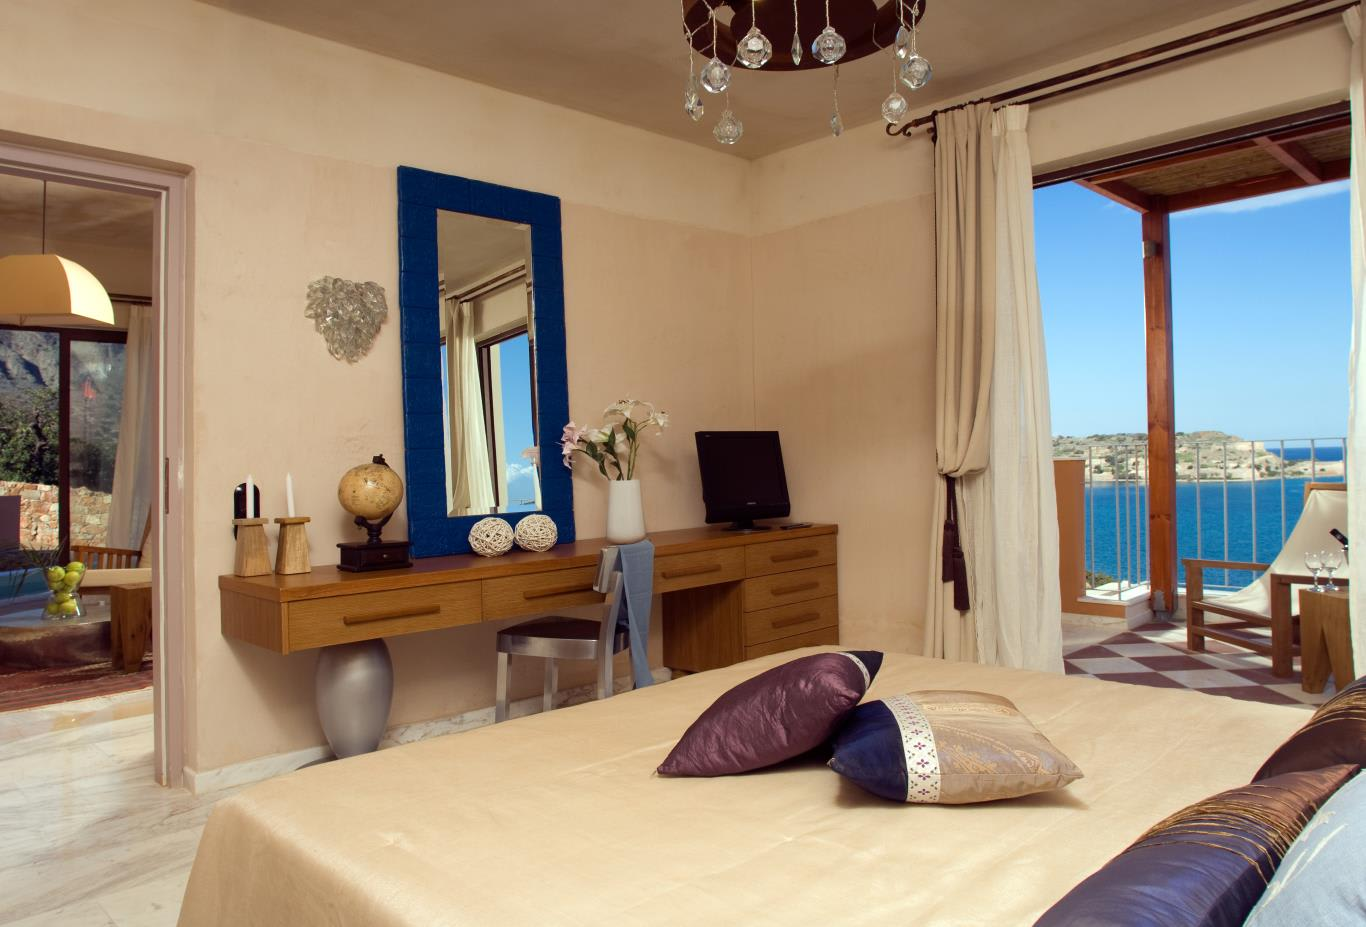 Premium One Bed Suite with Outdoor Jacuzzi Bedroom - views will be gardens